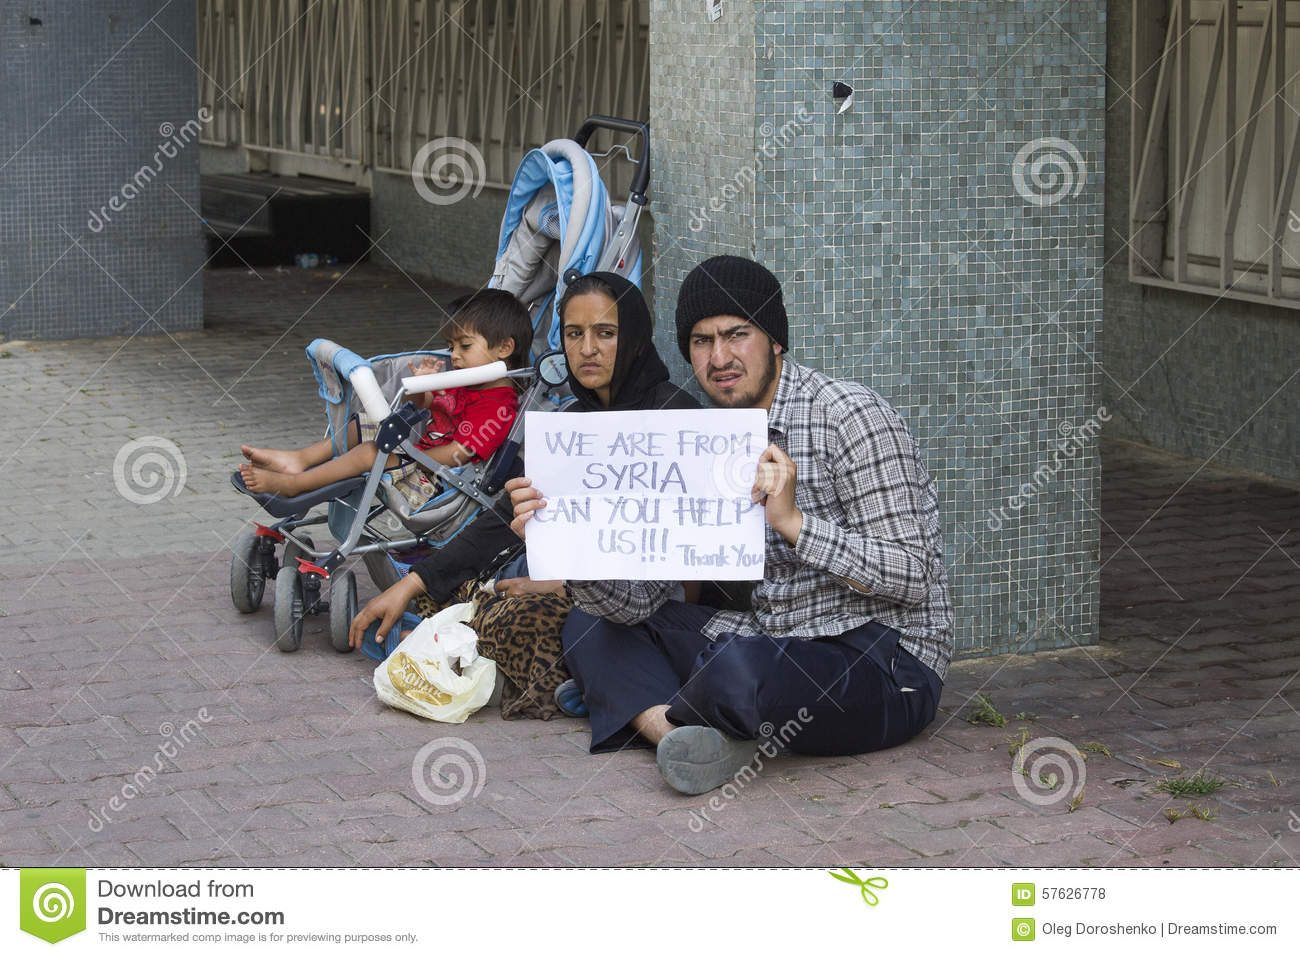 Refugees from Syria are asking for help on the street in Istanbul, Turkey